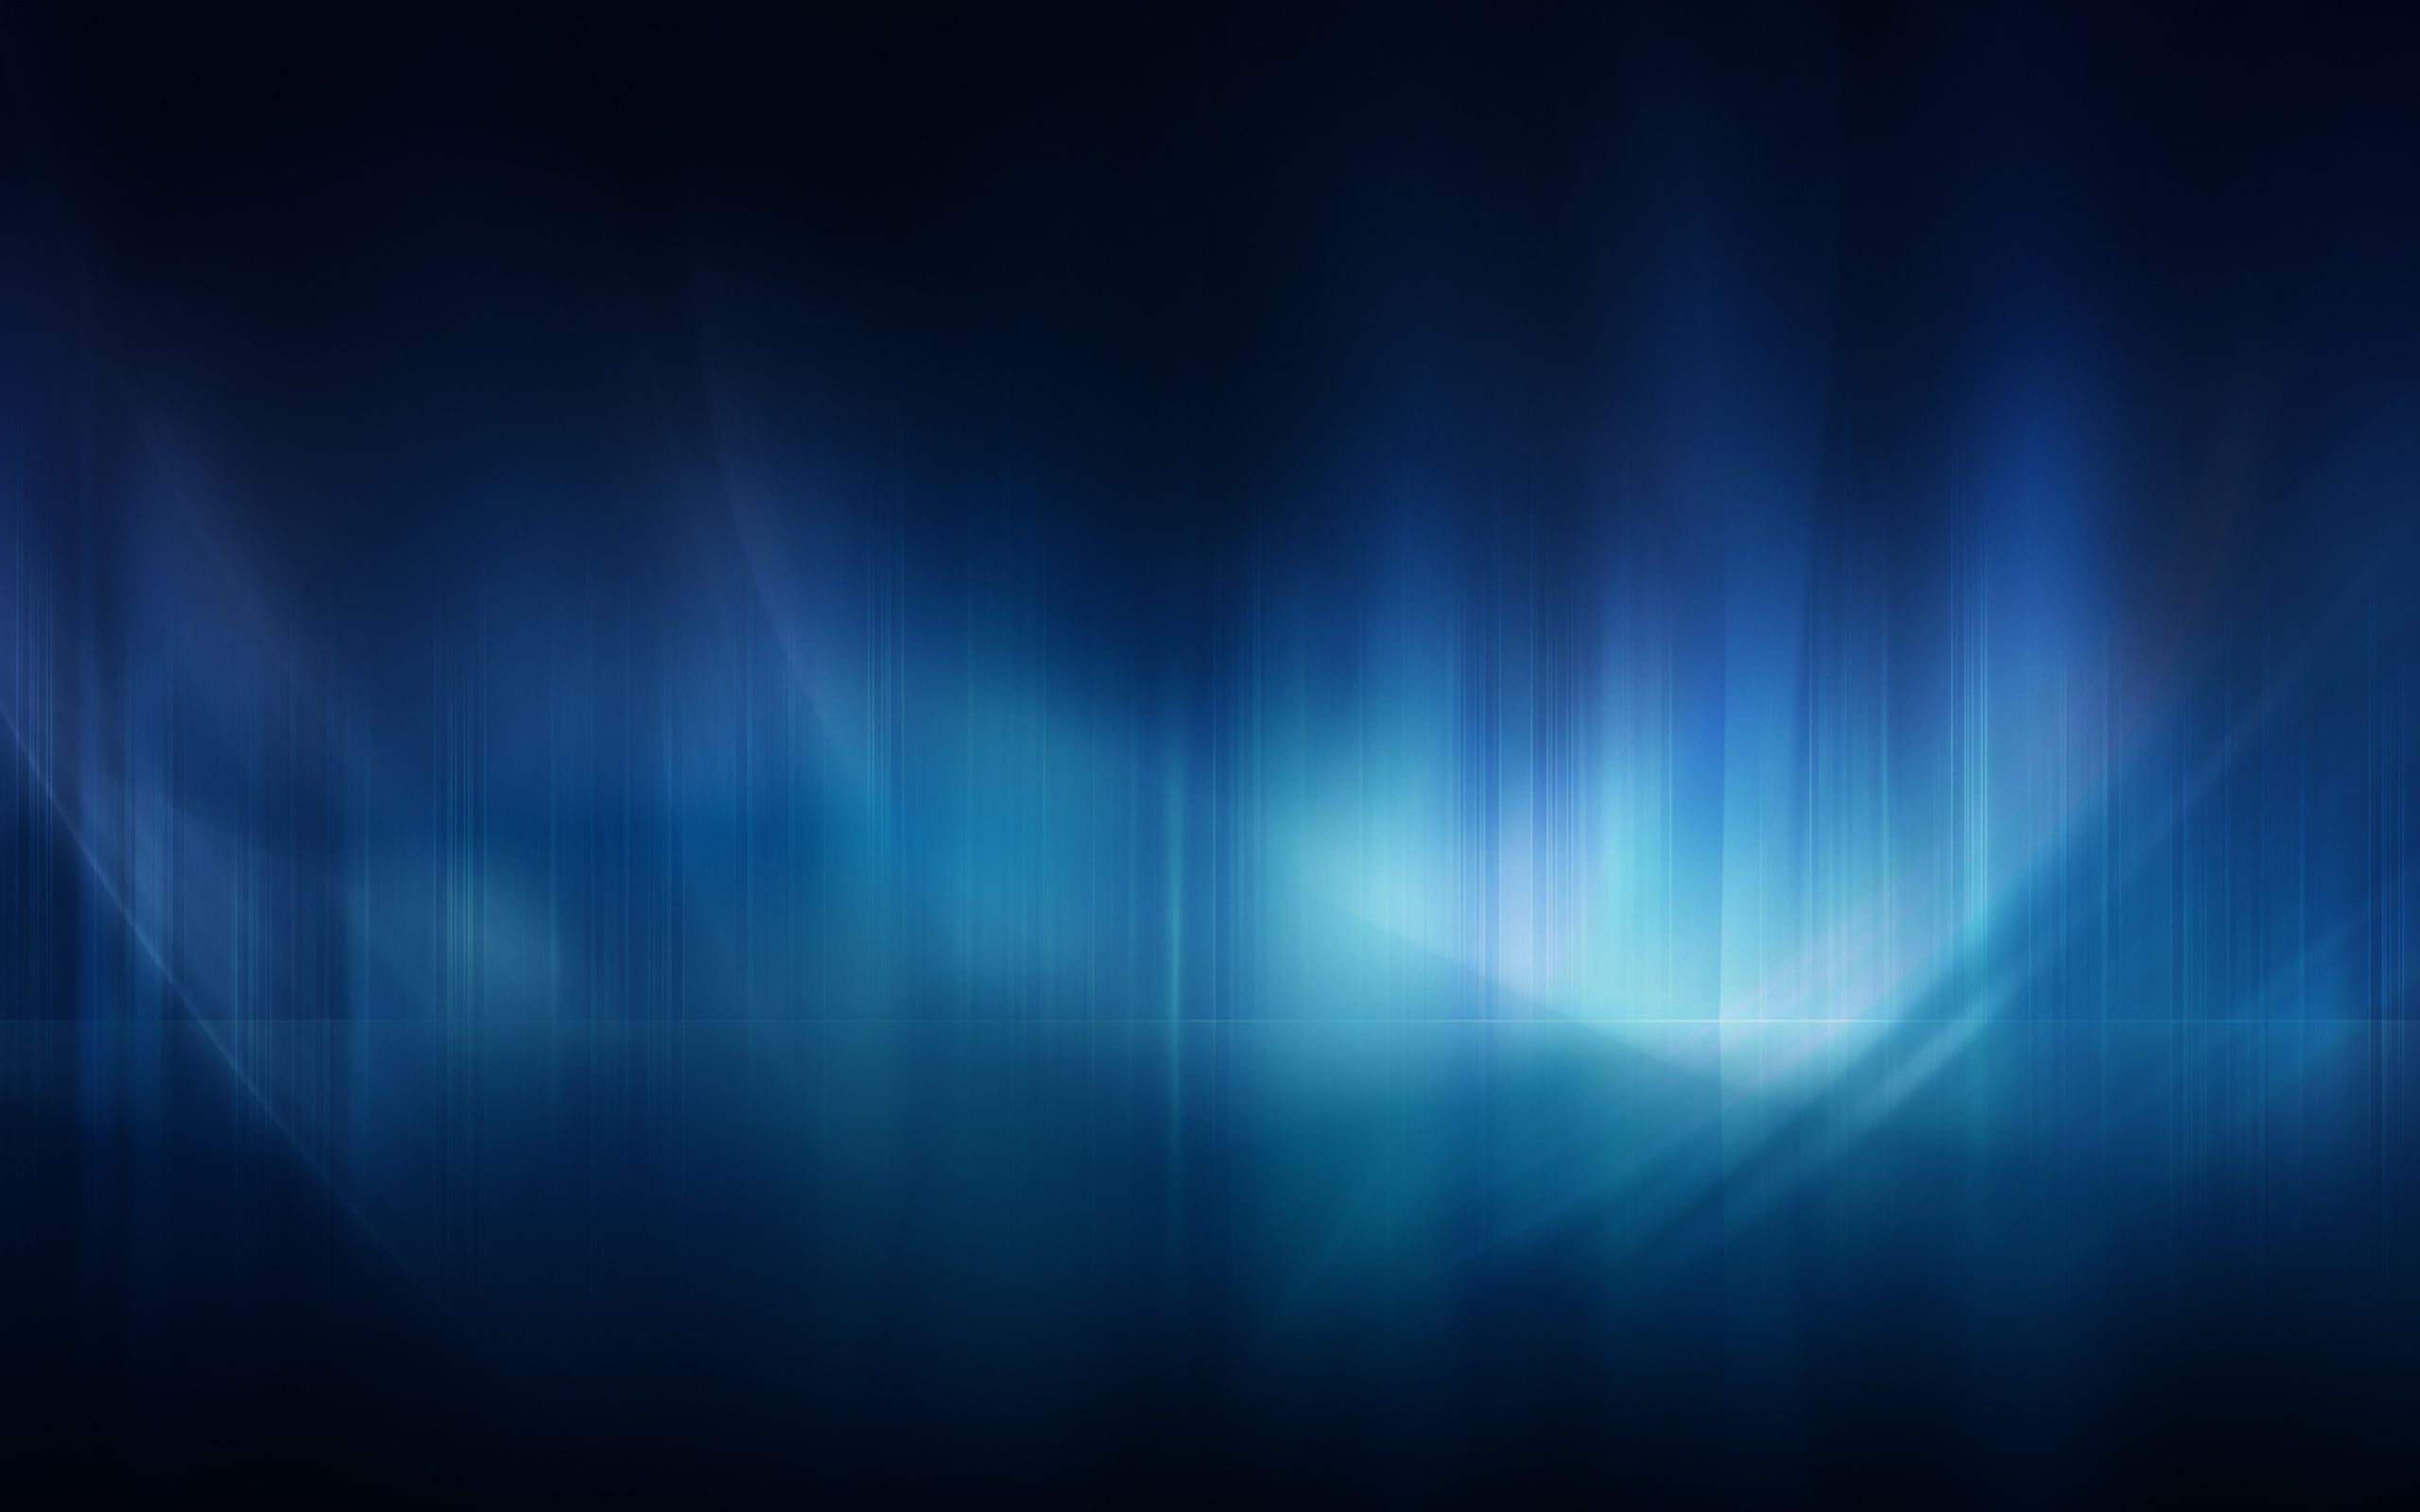 Black And Blue Backgrounds - Wallpaper Cave